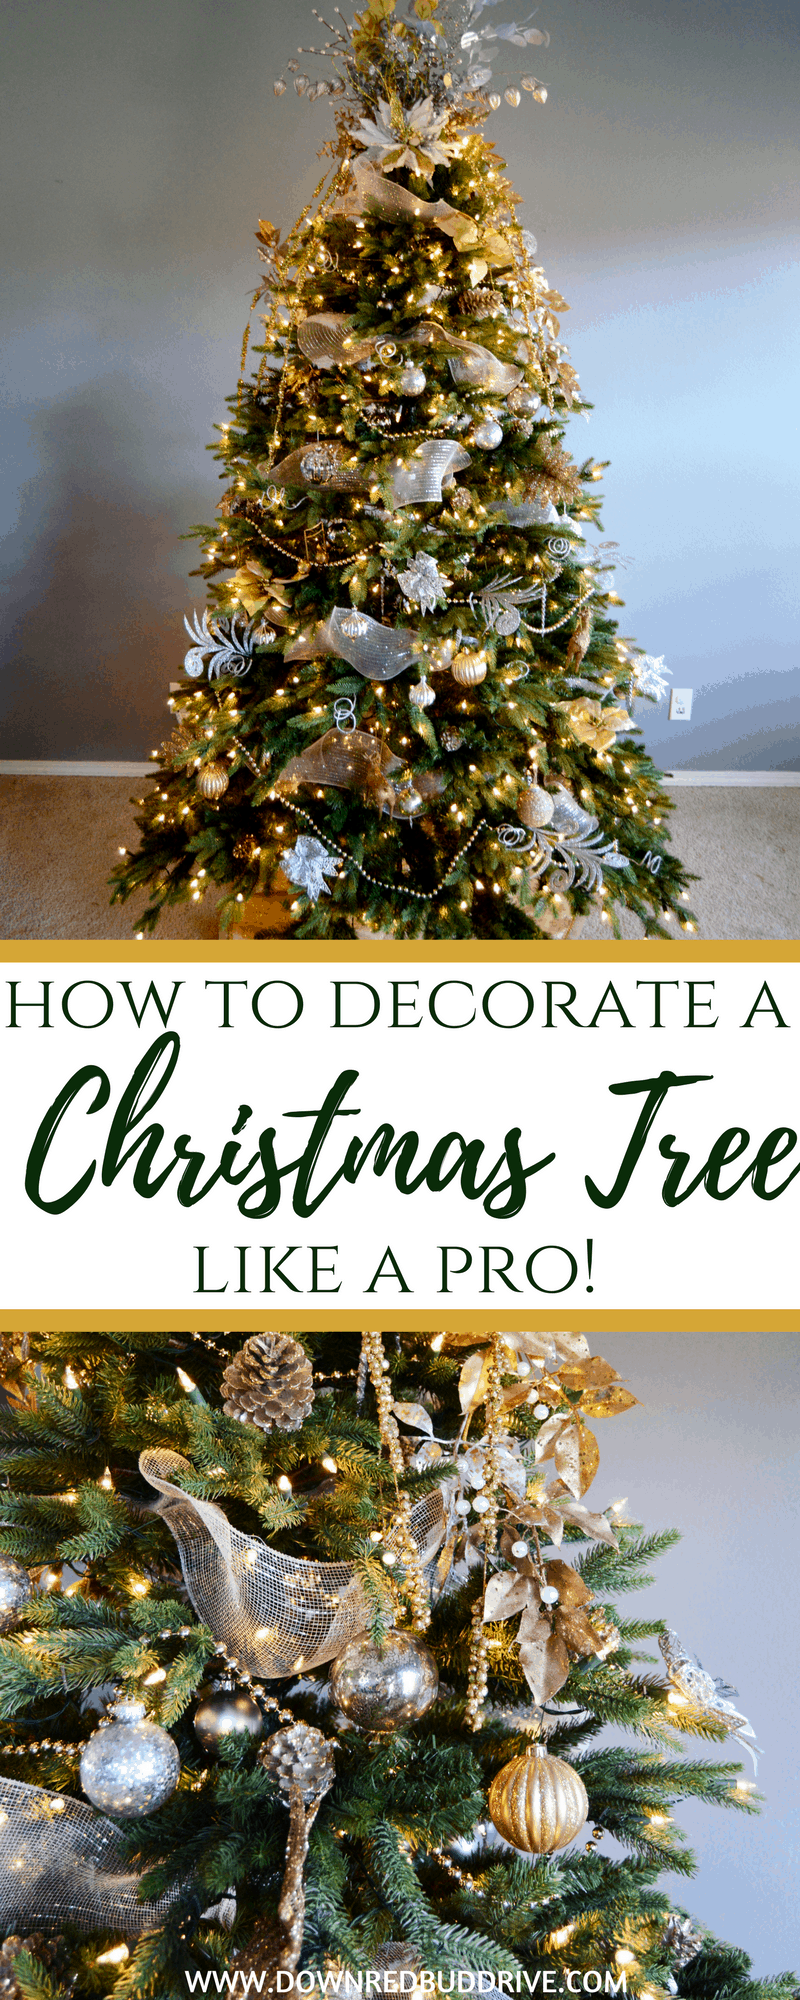 How to Decorate a Christmas Tree Like a Pro! | It's all ...